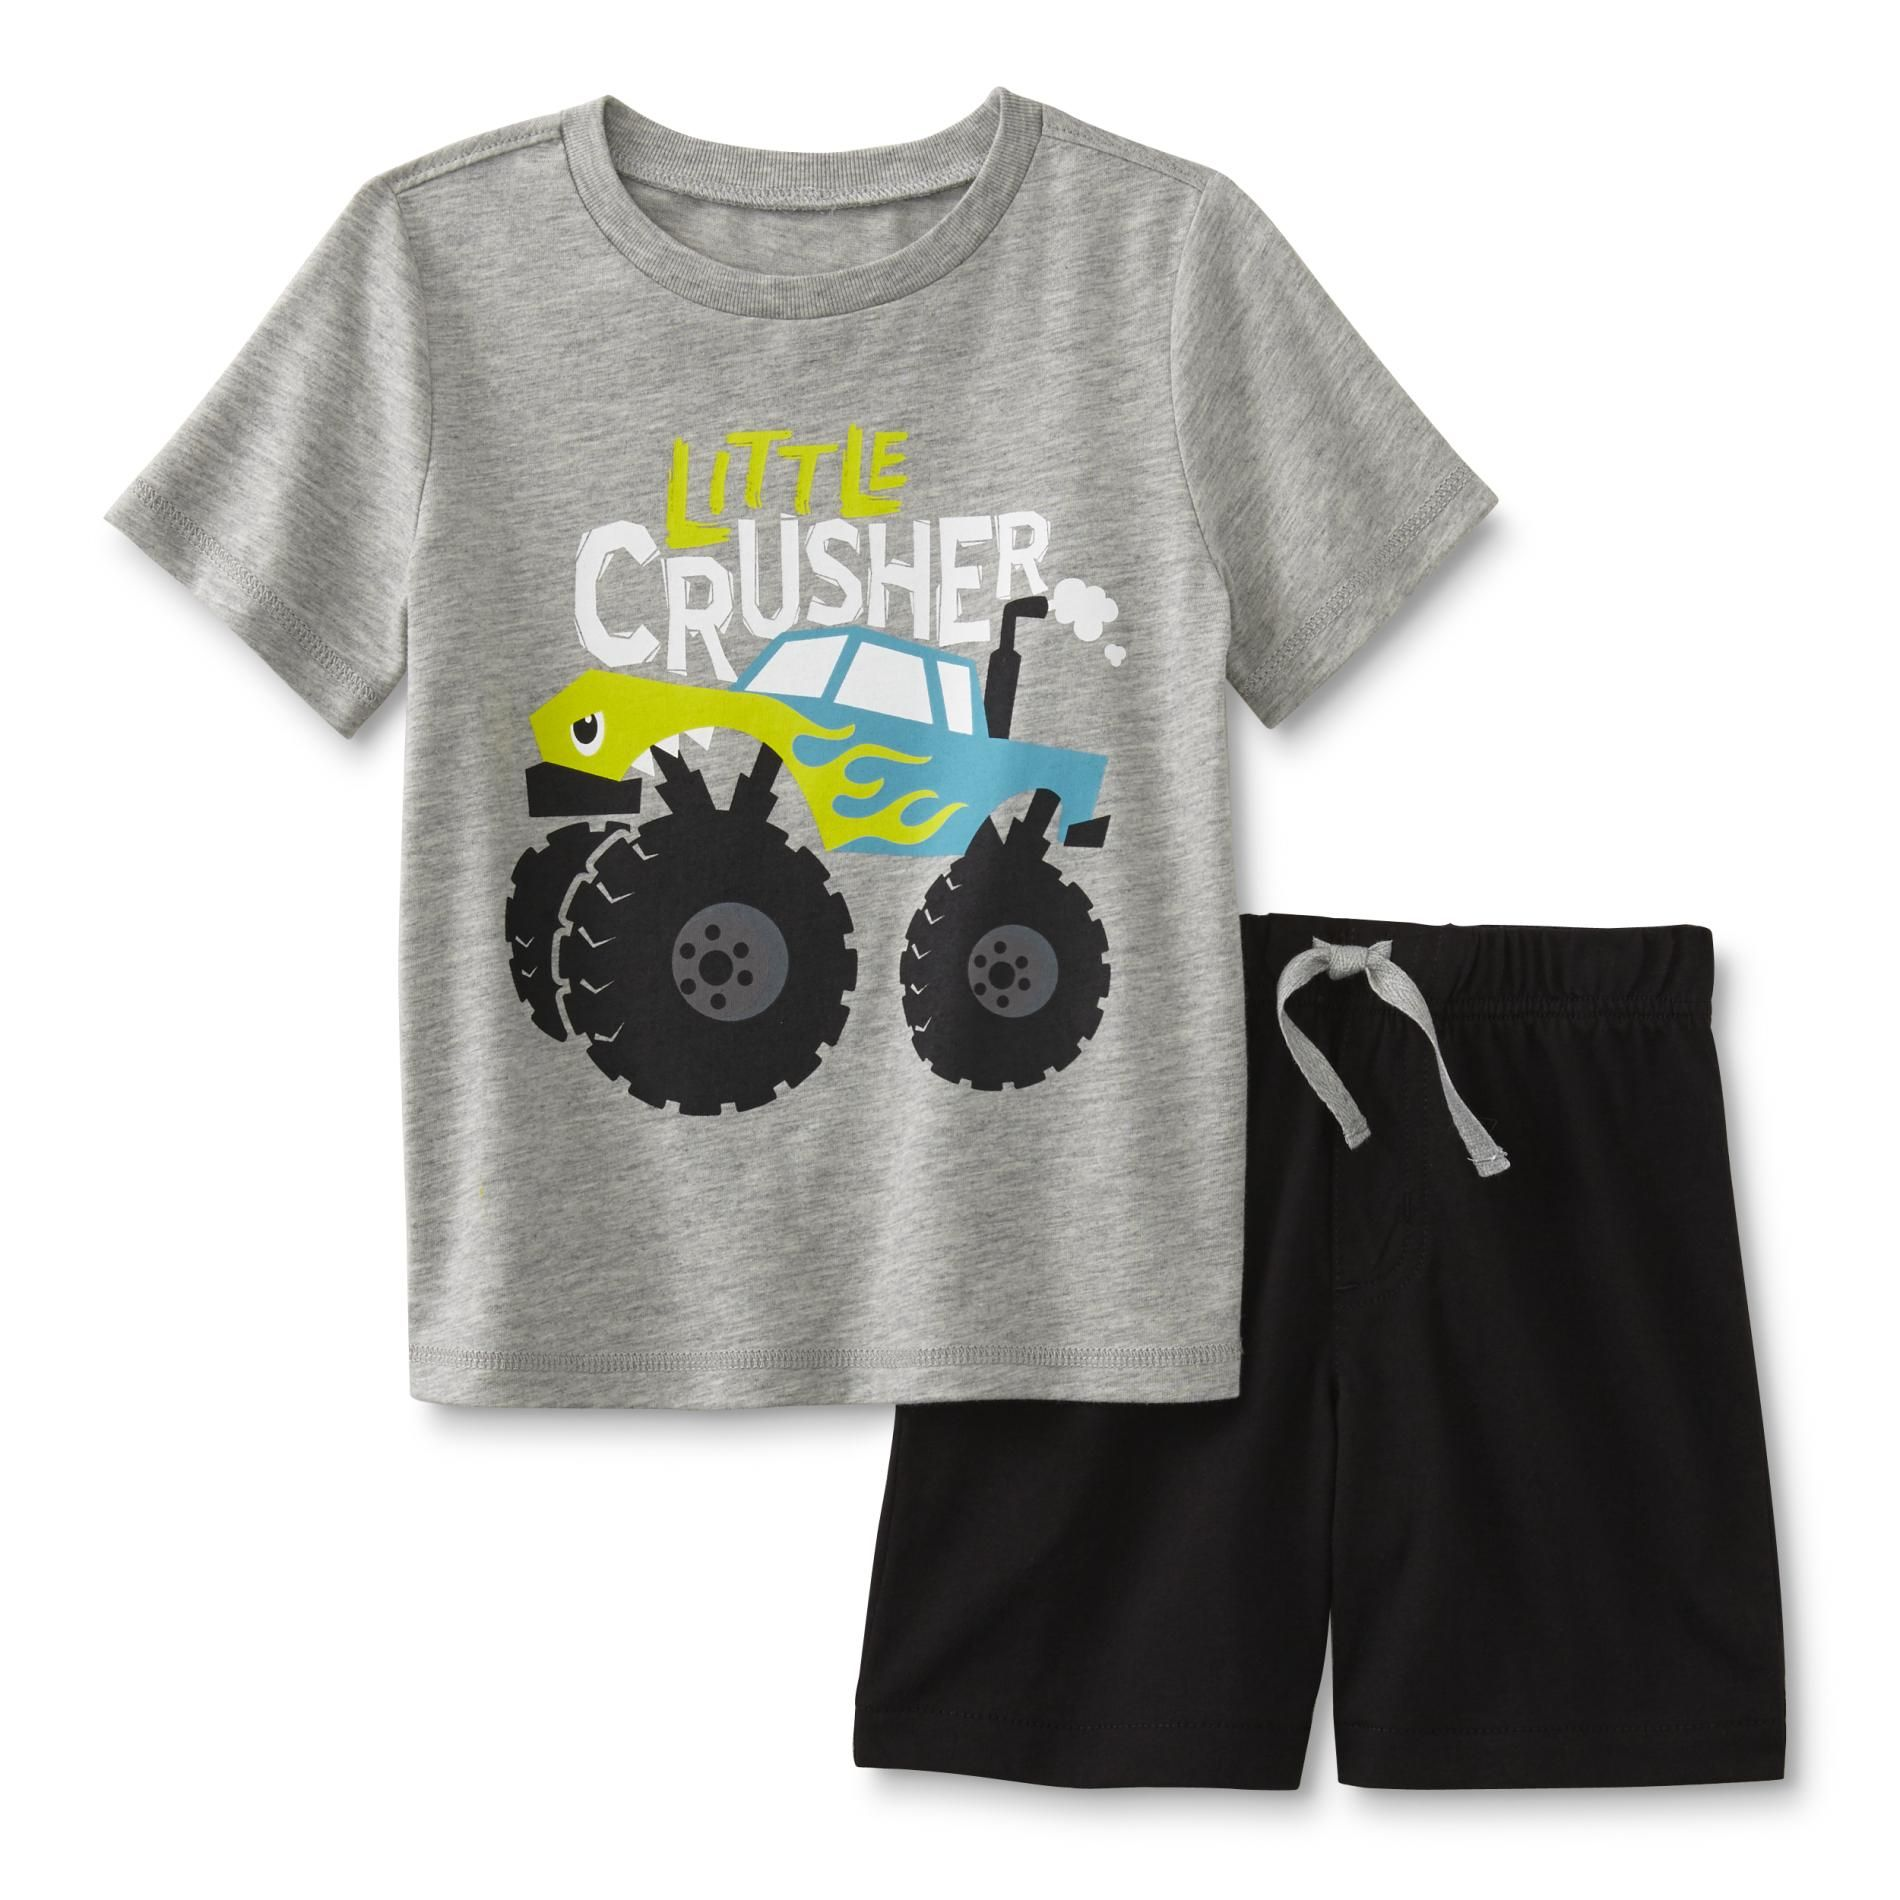 de477e947 WonderKids Infant & Toddler Boy's Graphic T-Shirt & Shorts - Monster Truck